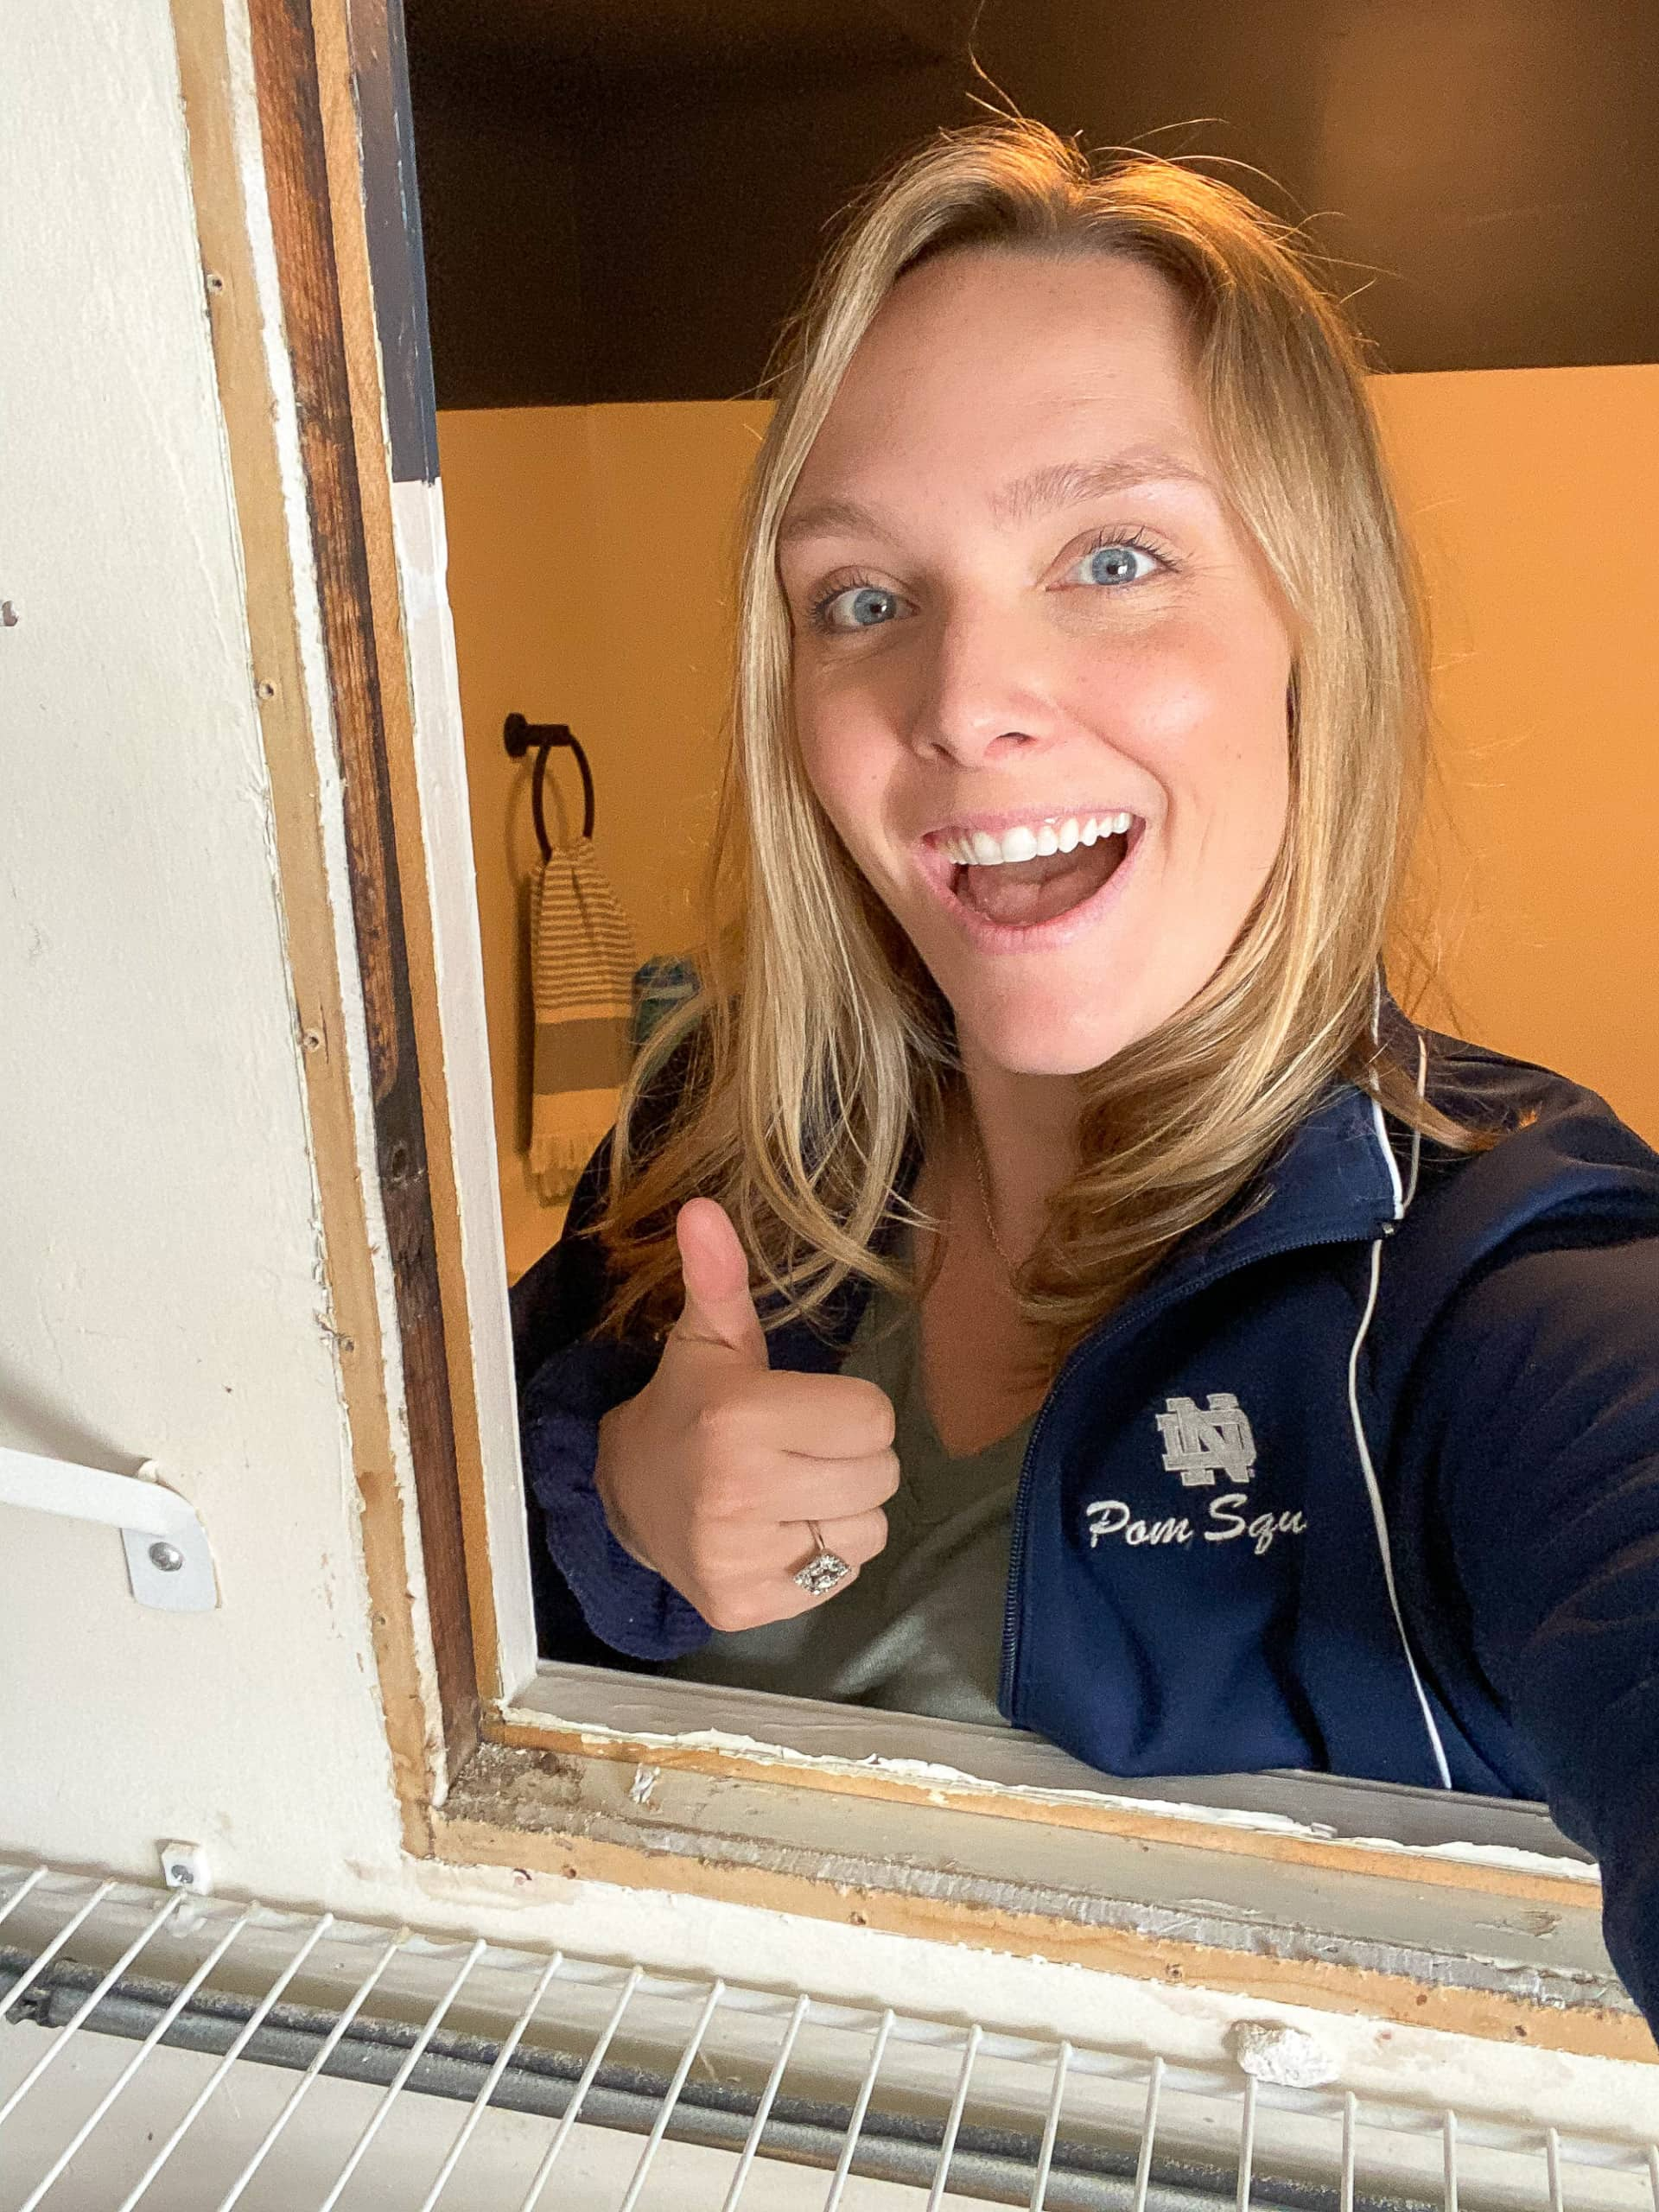 Removing the old window